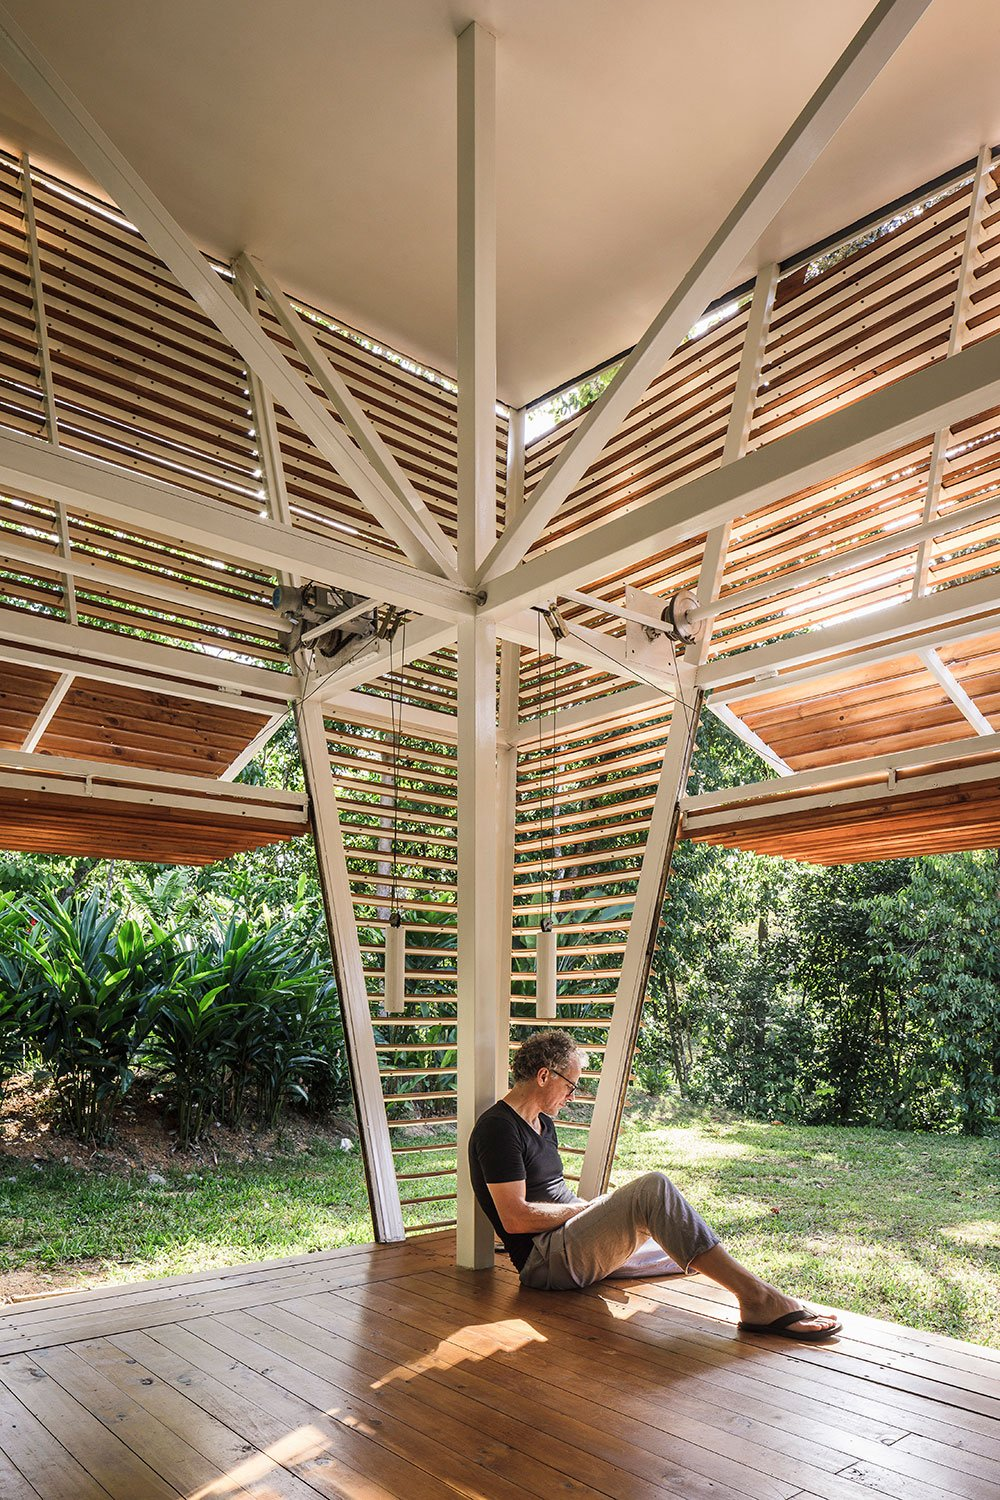 Operable facade panels convert interior into exterior spaces and play with the indoor-outdoor dynamic of tropical architecture. Fernando Alda